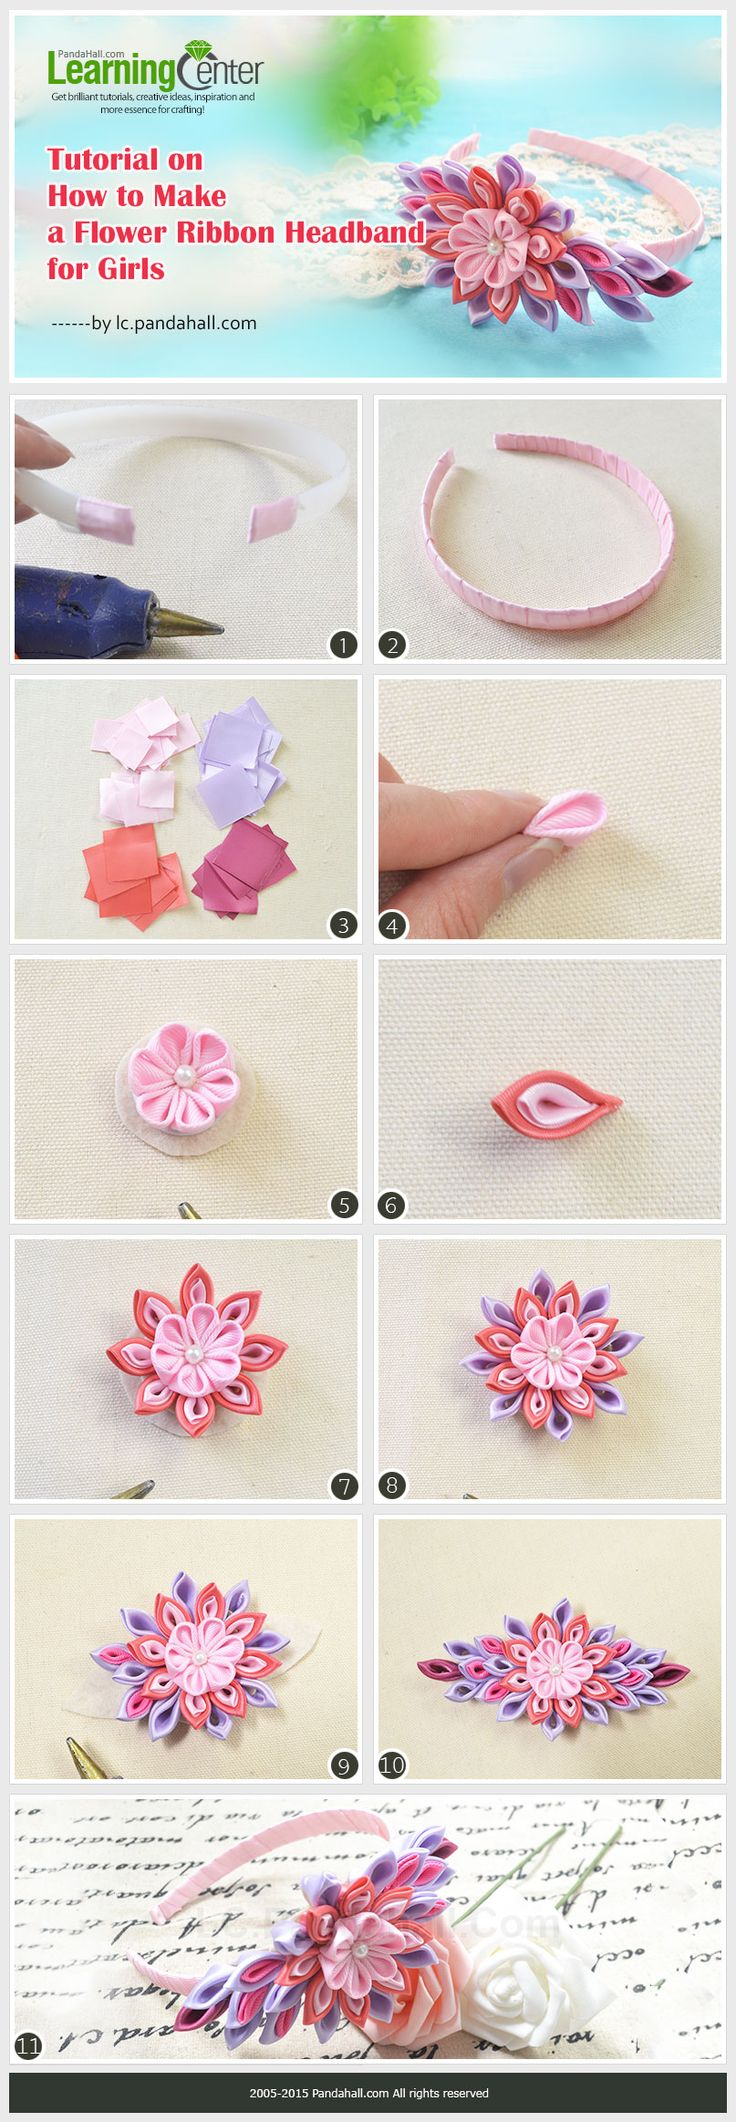 You can see many headbands for girls in shops, have you ever thought to make a headband by yourselves?